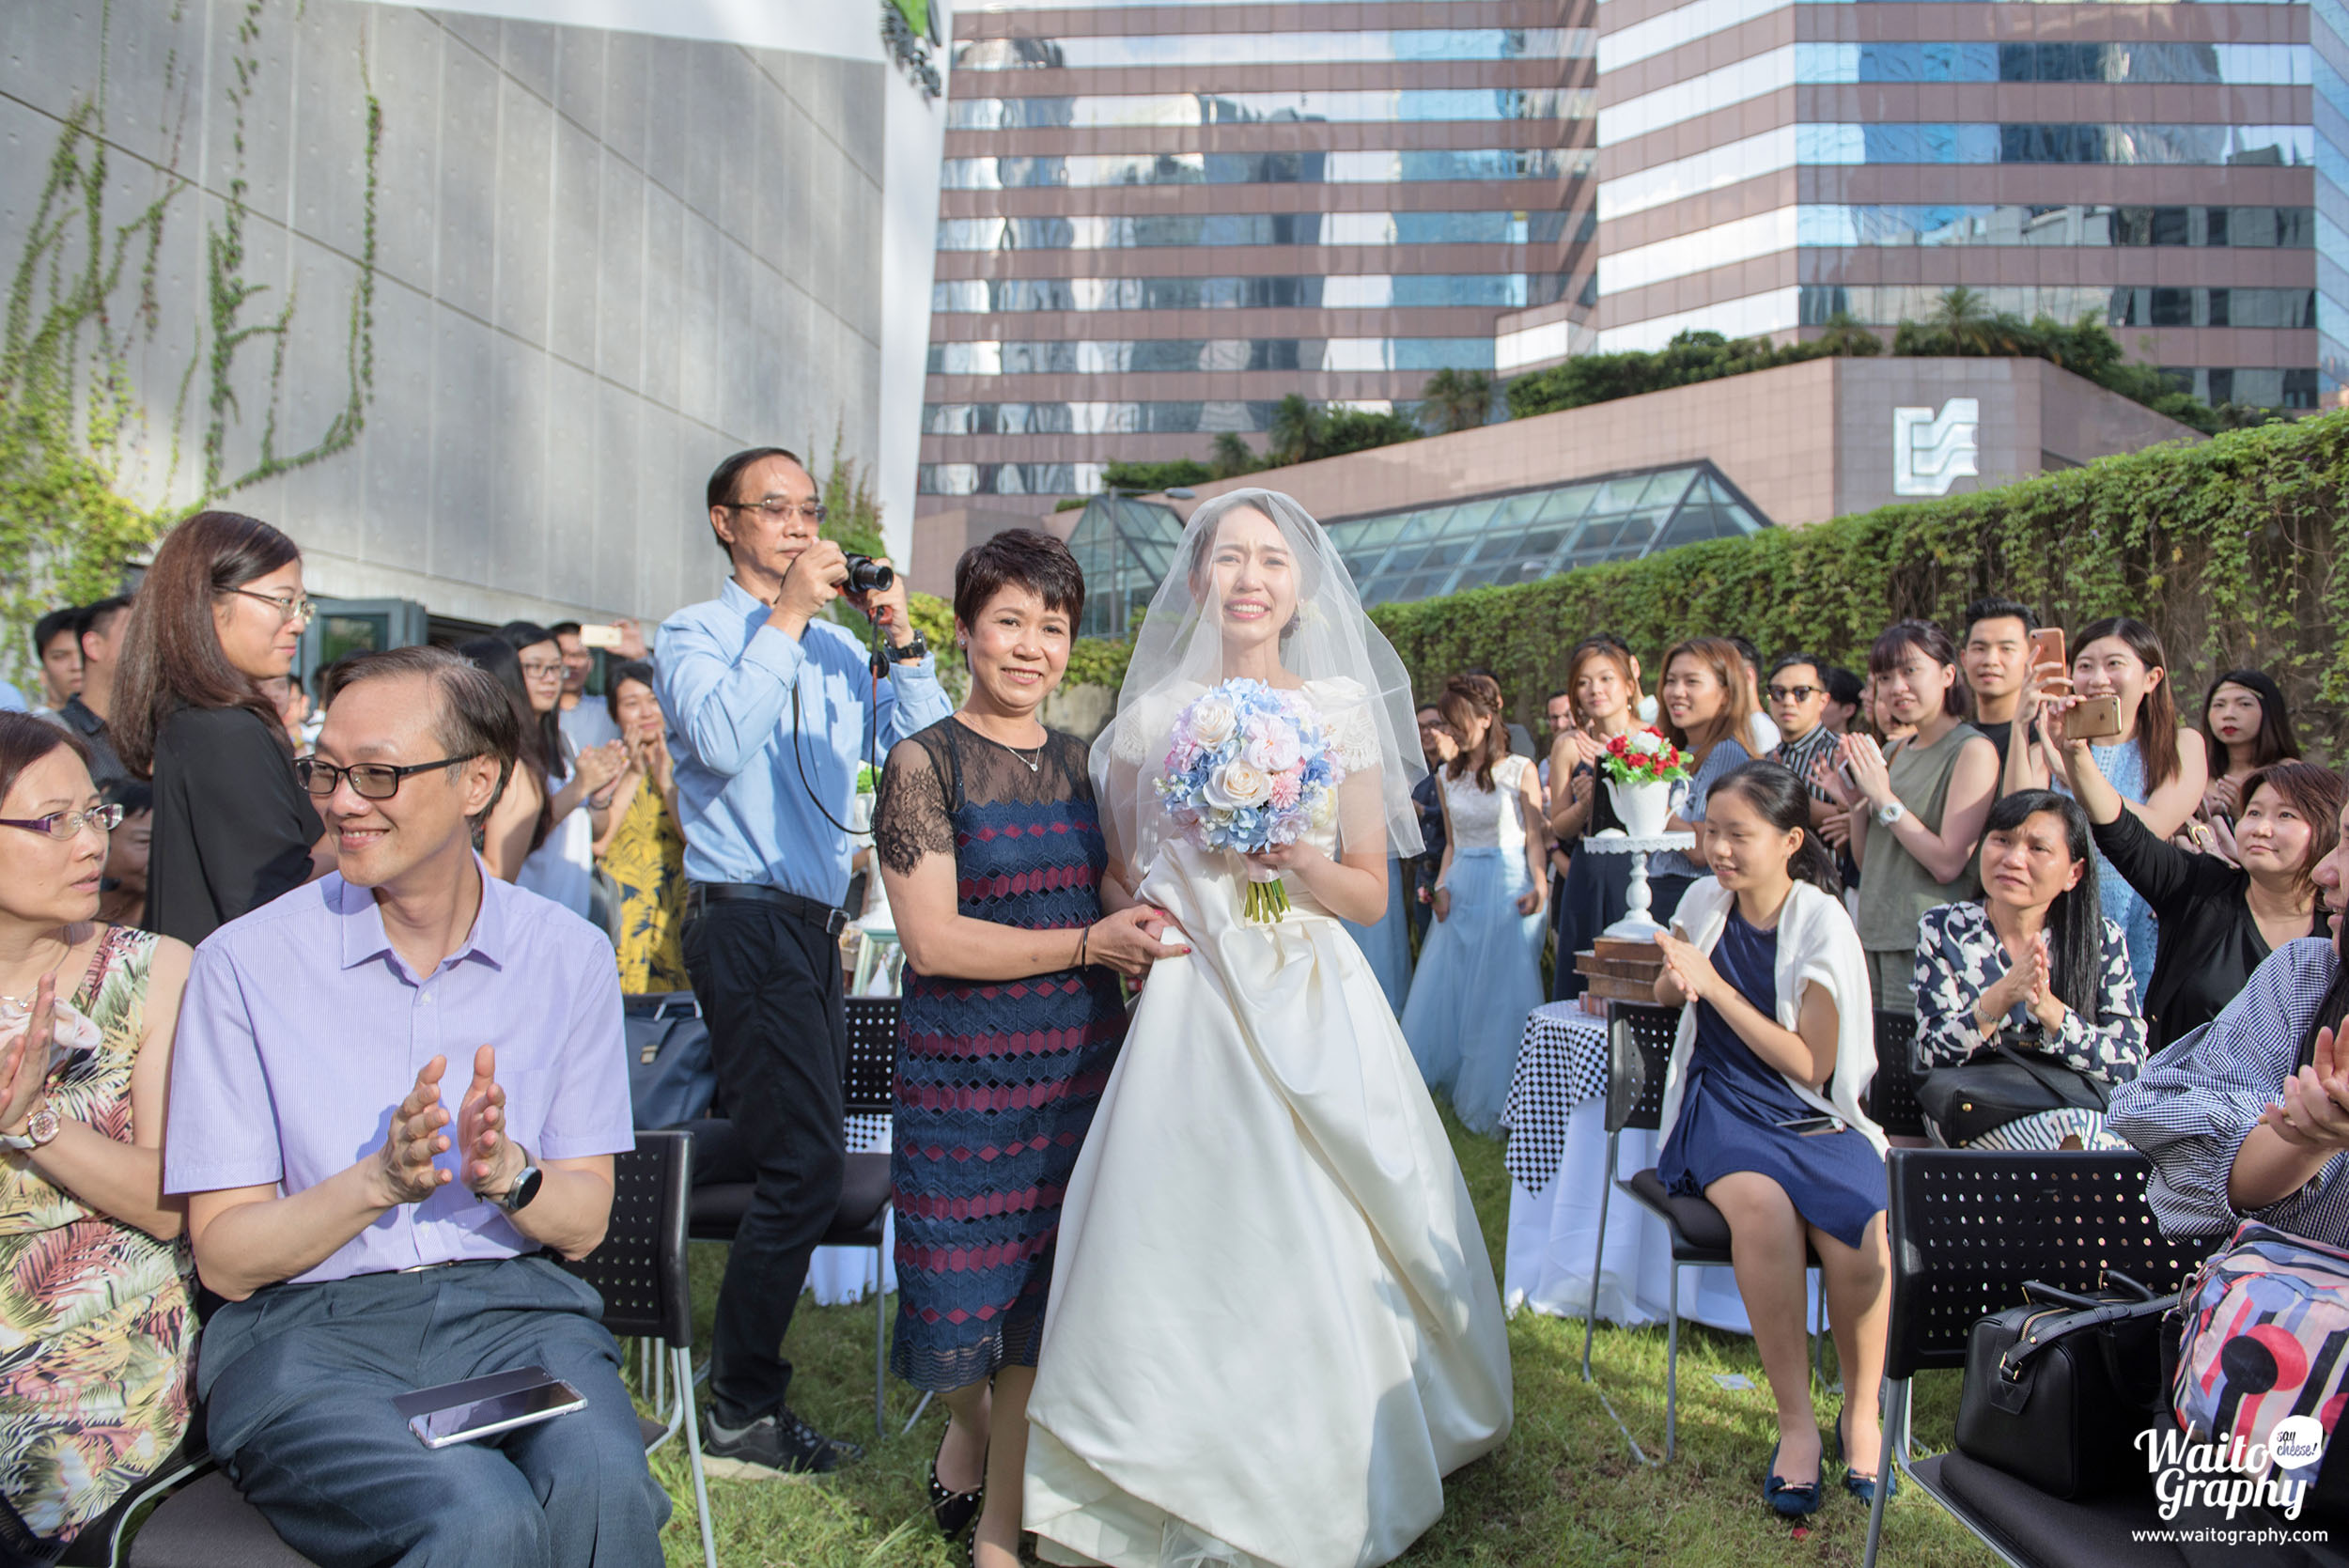 Lets welcome the bride touching moment captured by wedding photographer Hong Kong